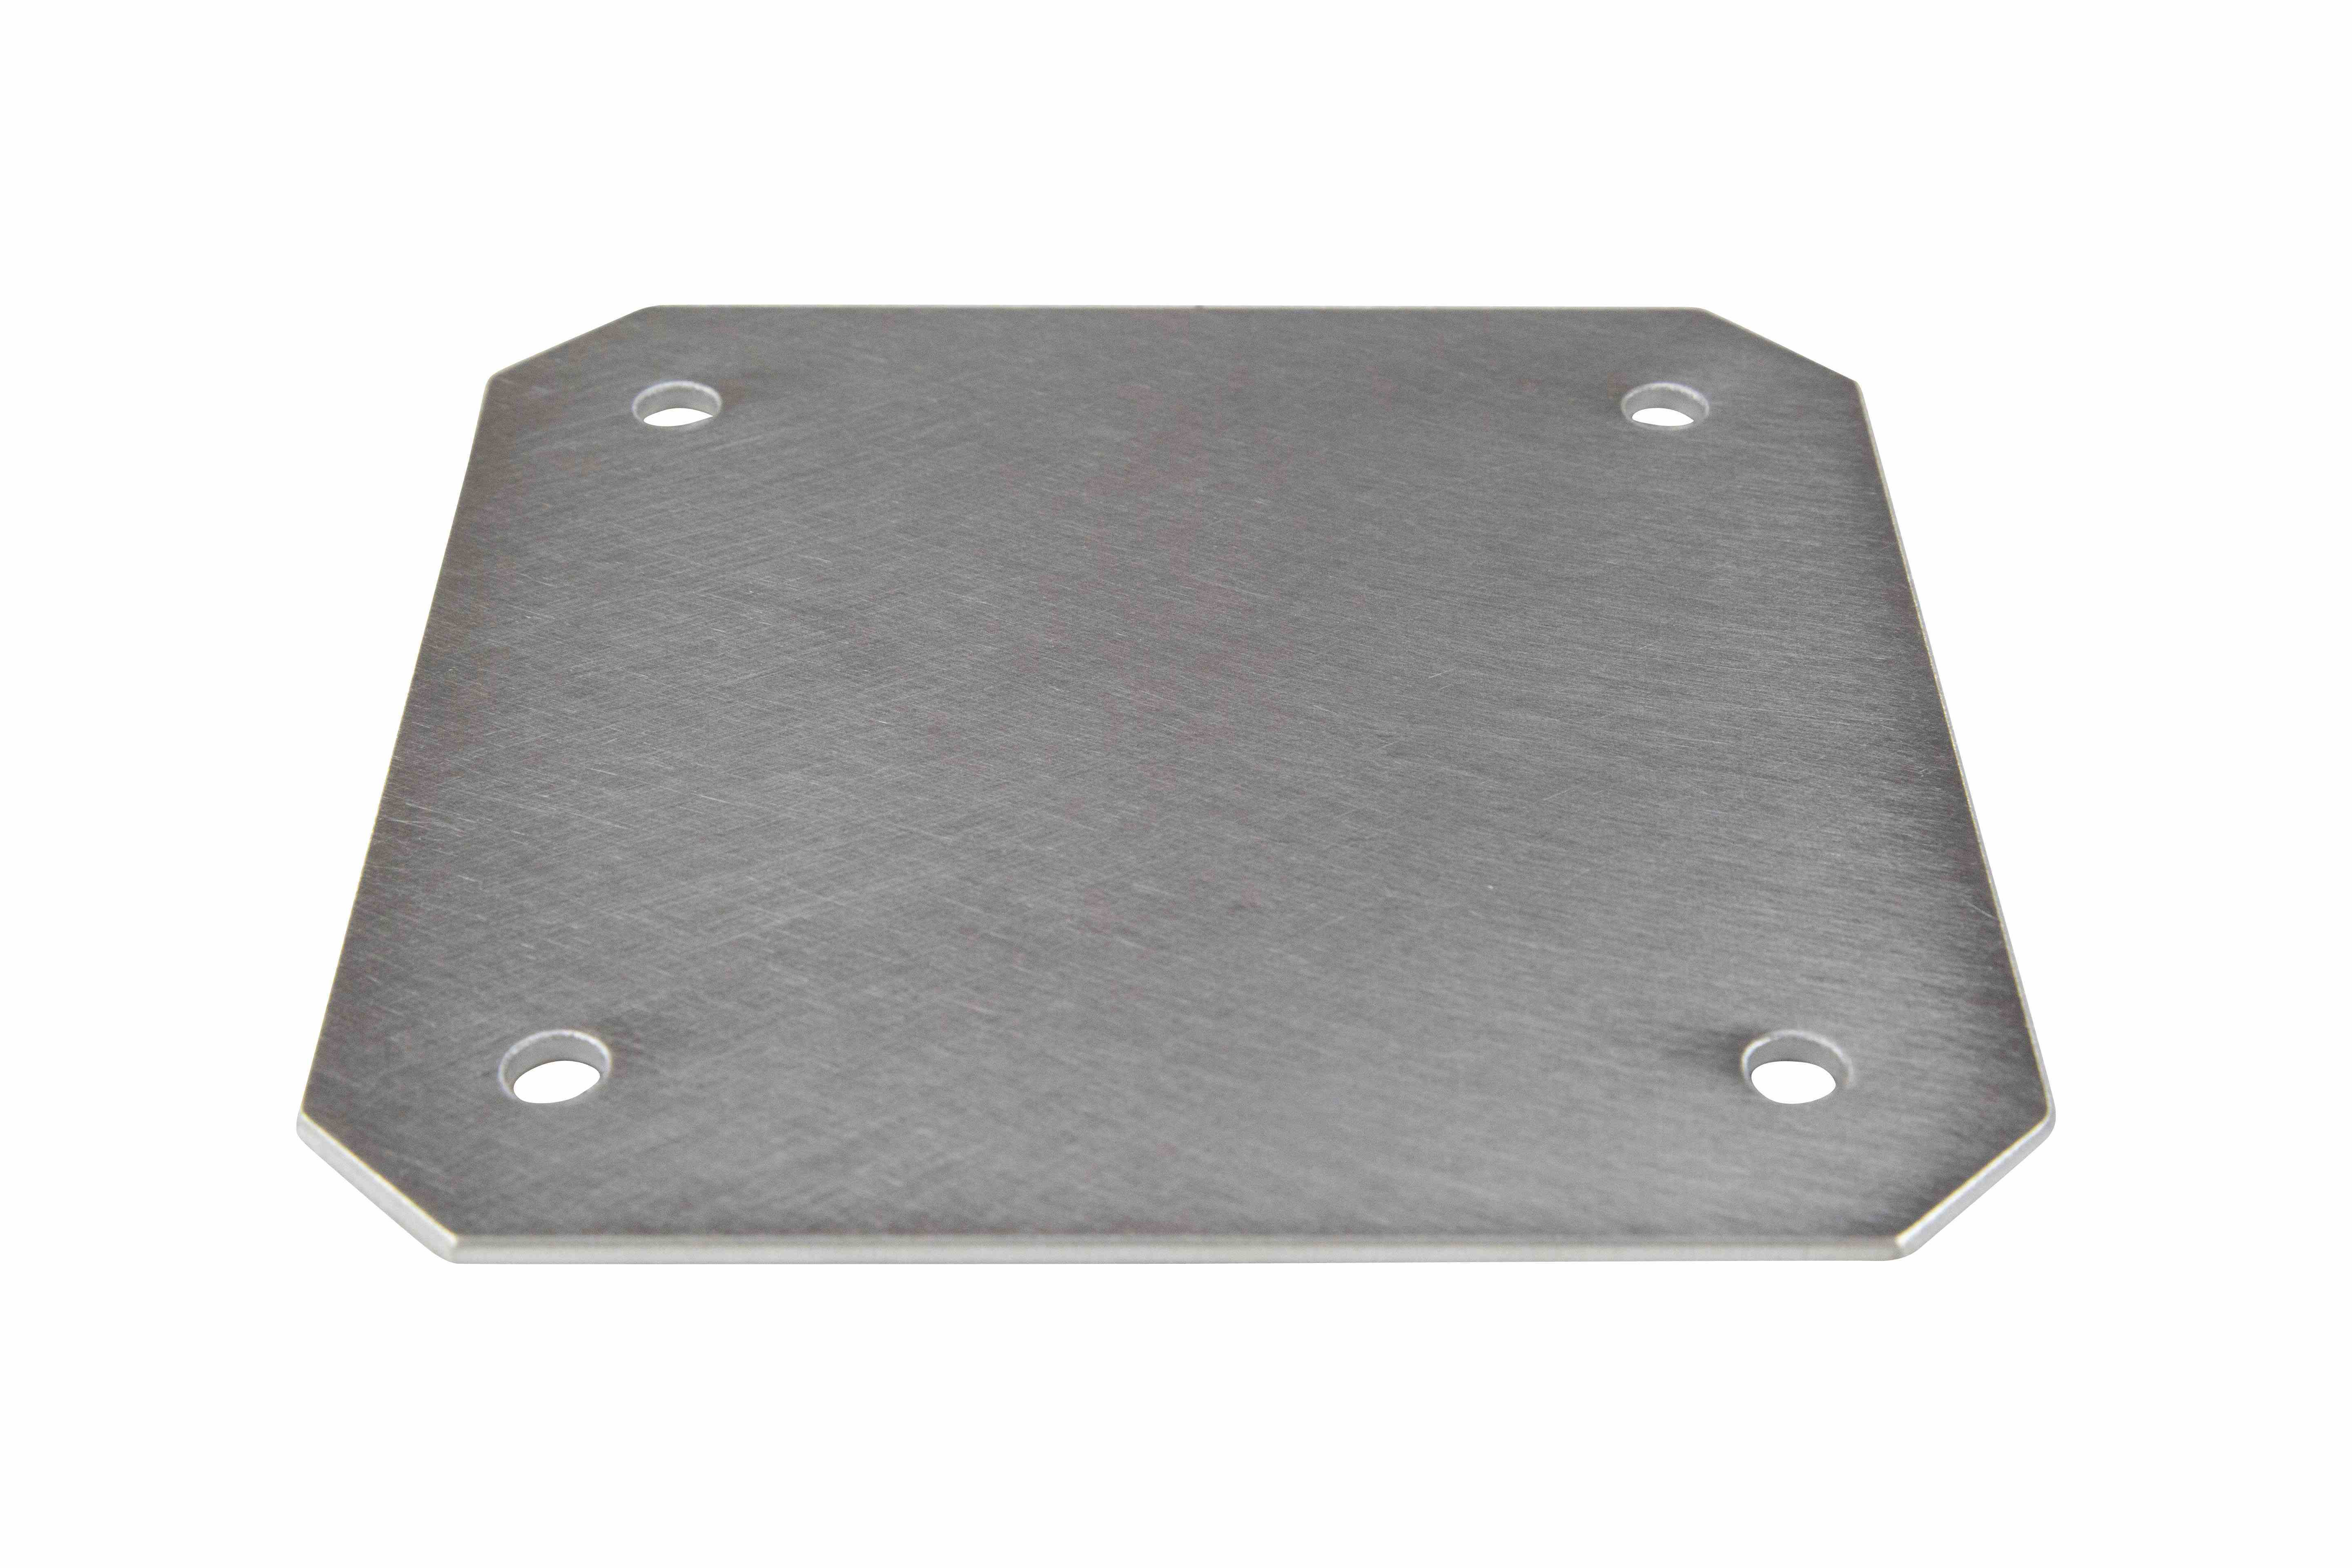 Aluminum Back Plate for EPL-AEB-14.14 Series Explosion Proof Enclosure, Internal Bolt-In Mounting Pan